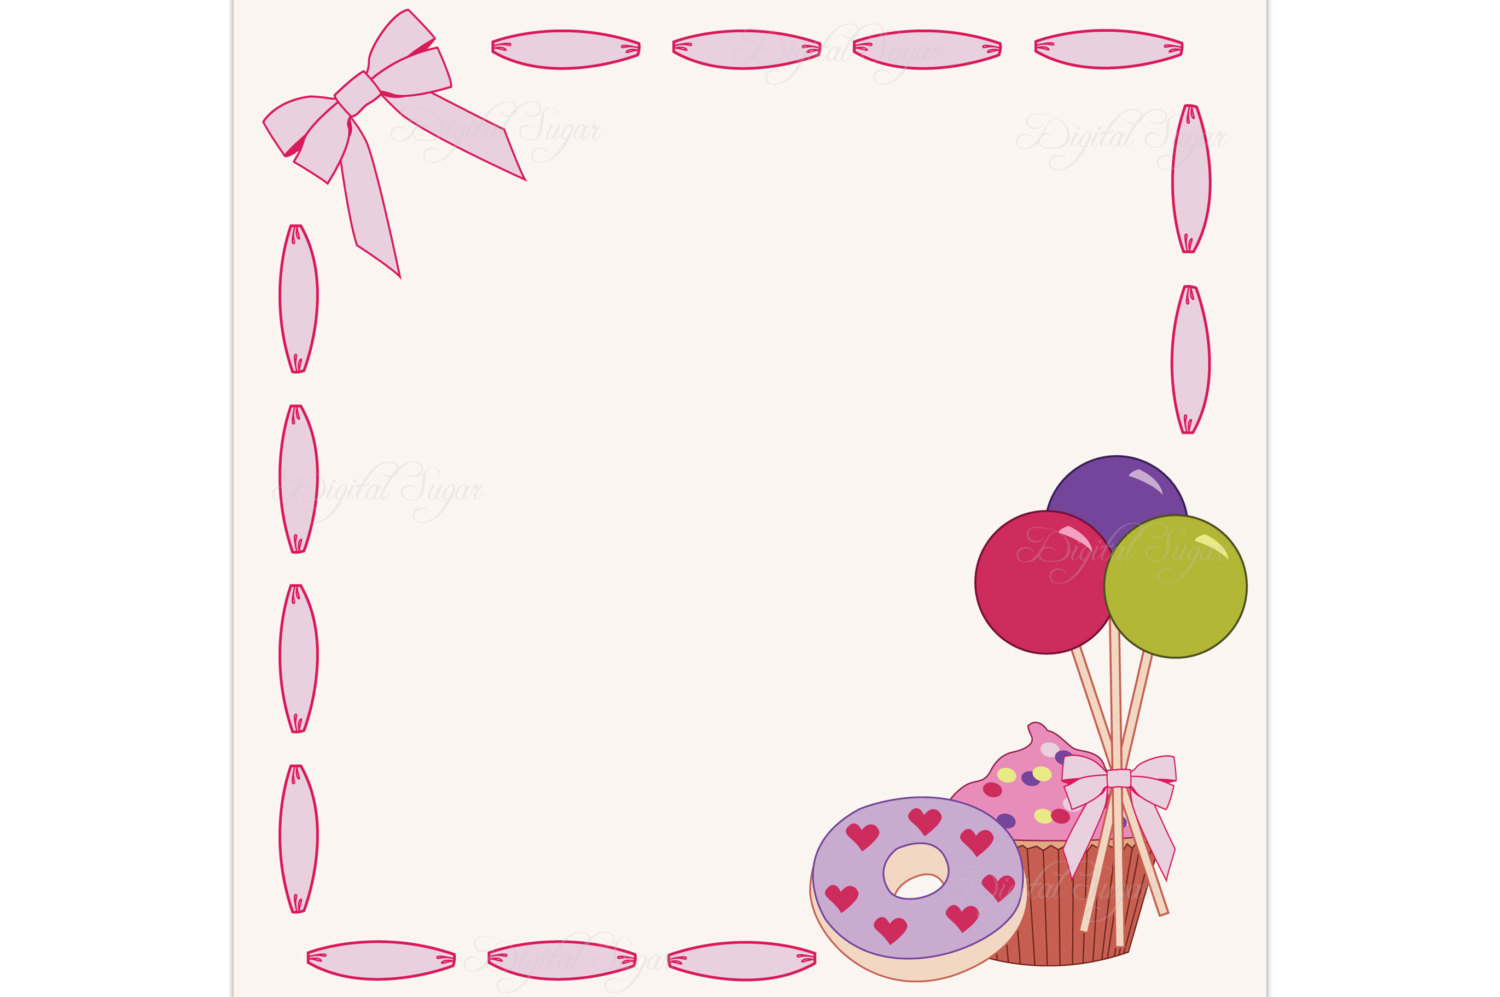 Frame clipart candy Digital Like item? Border this